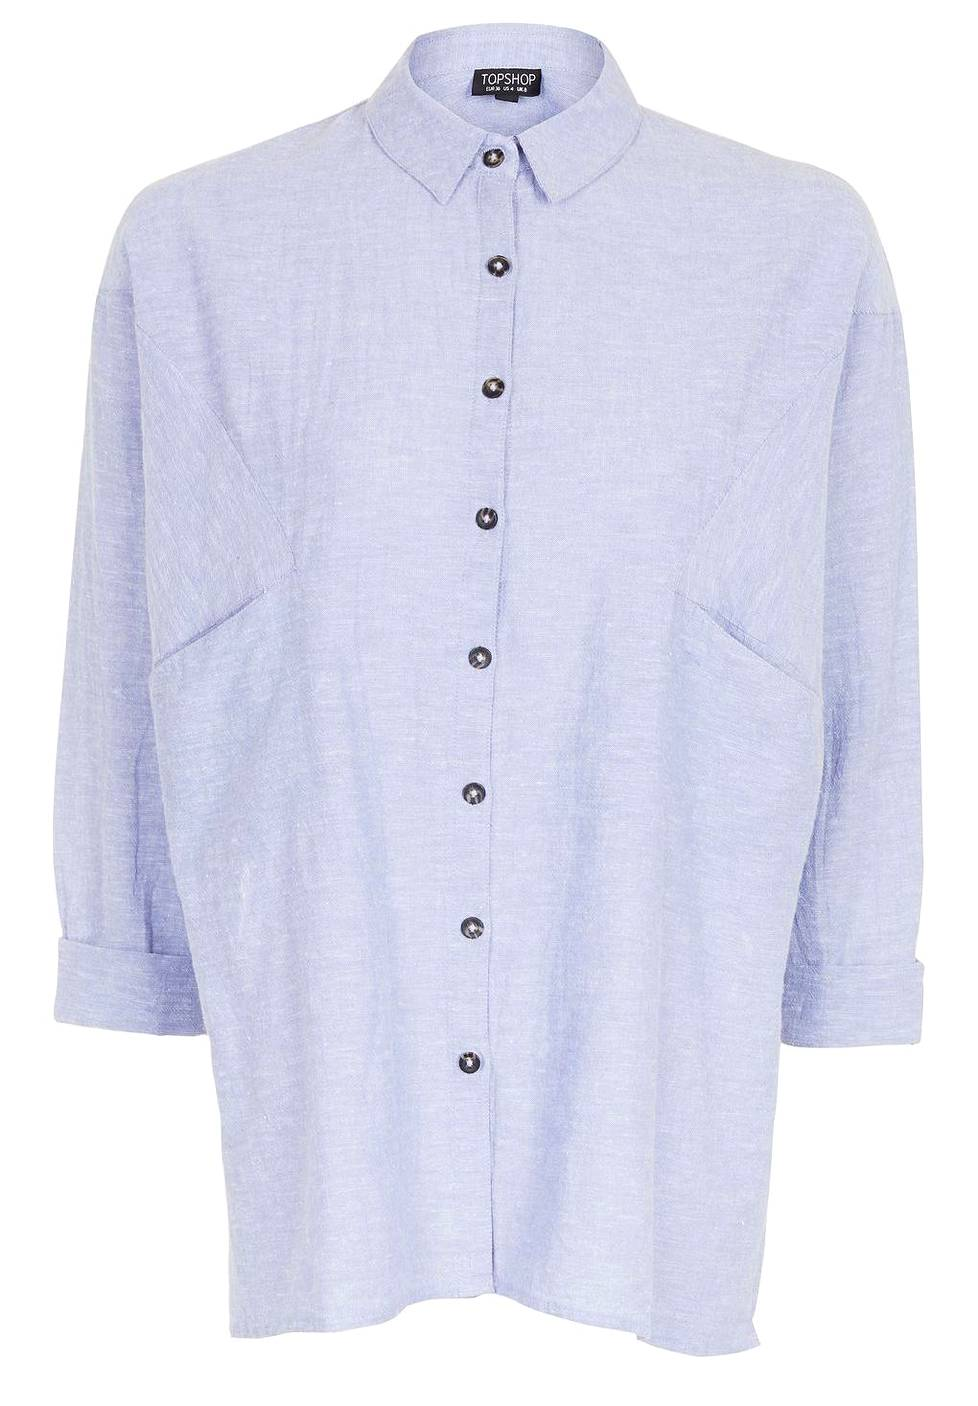 Oversized Neppy Chambray Shirt 44 €, Topshop